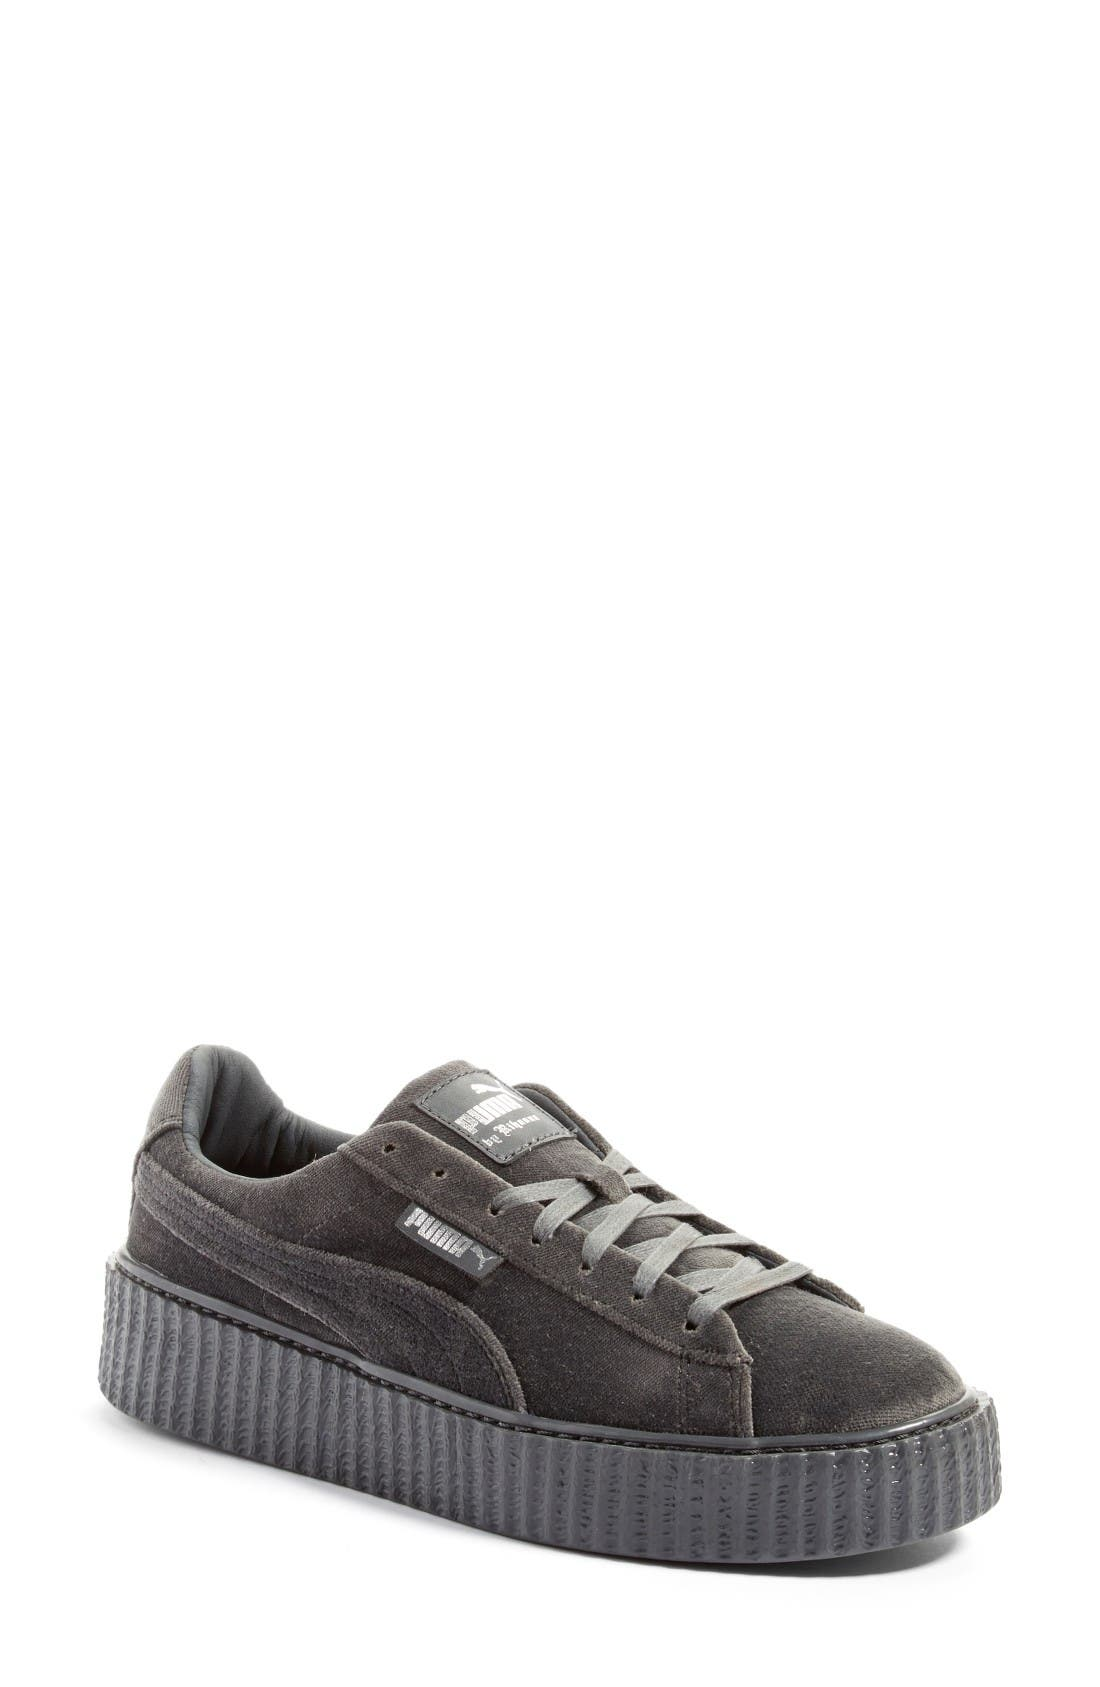 Main Image - FENTY PUMA by Rihanna Creeper Sneaker (Women)